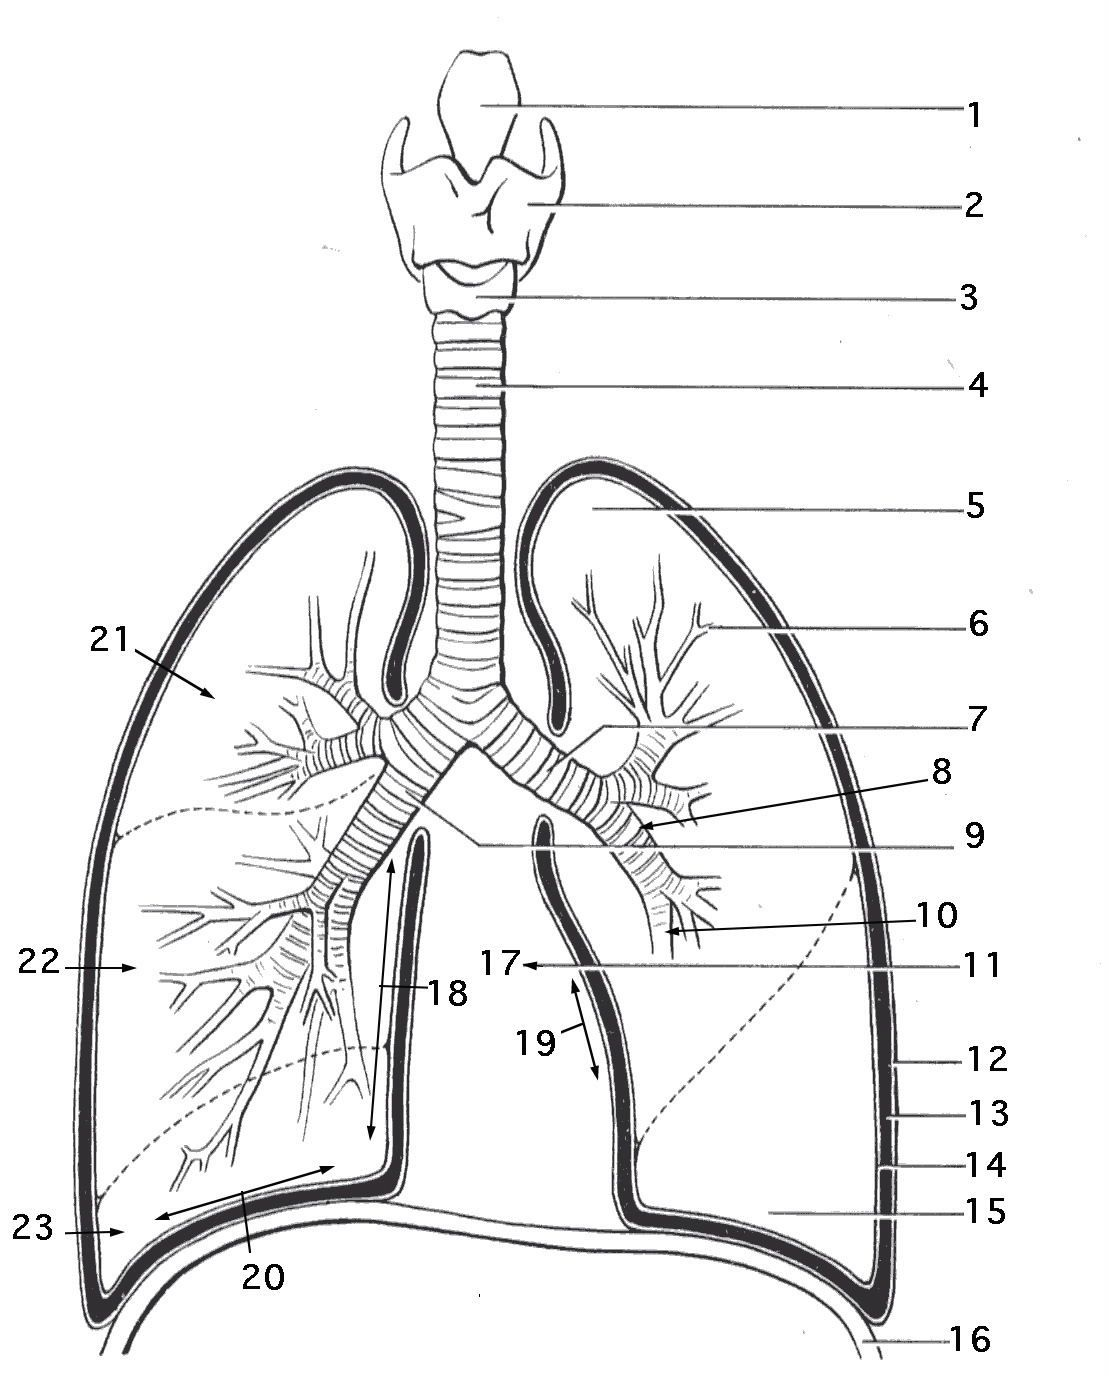 Unlabelled Respiratory System Diagram